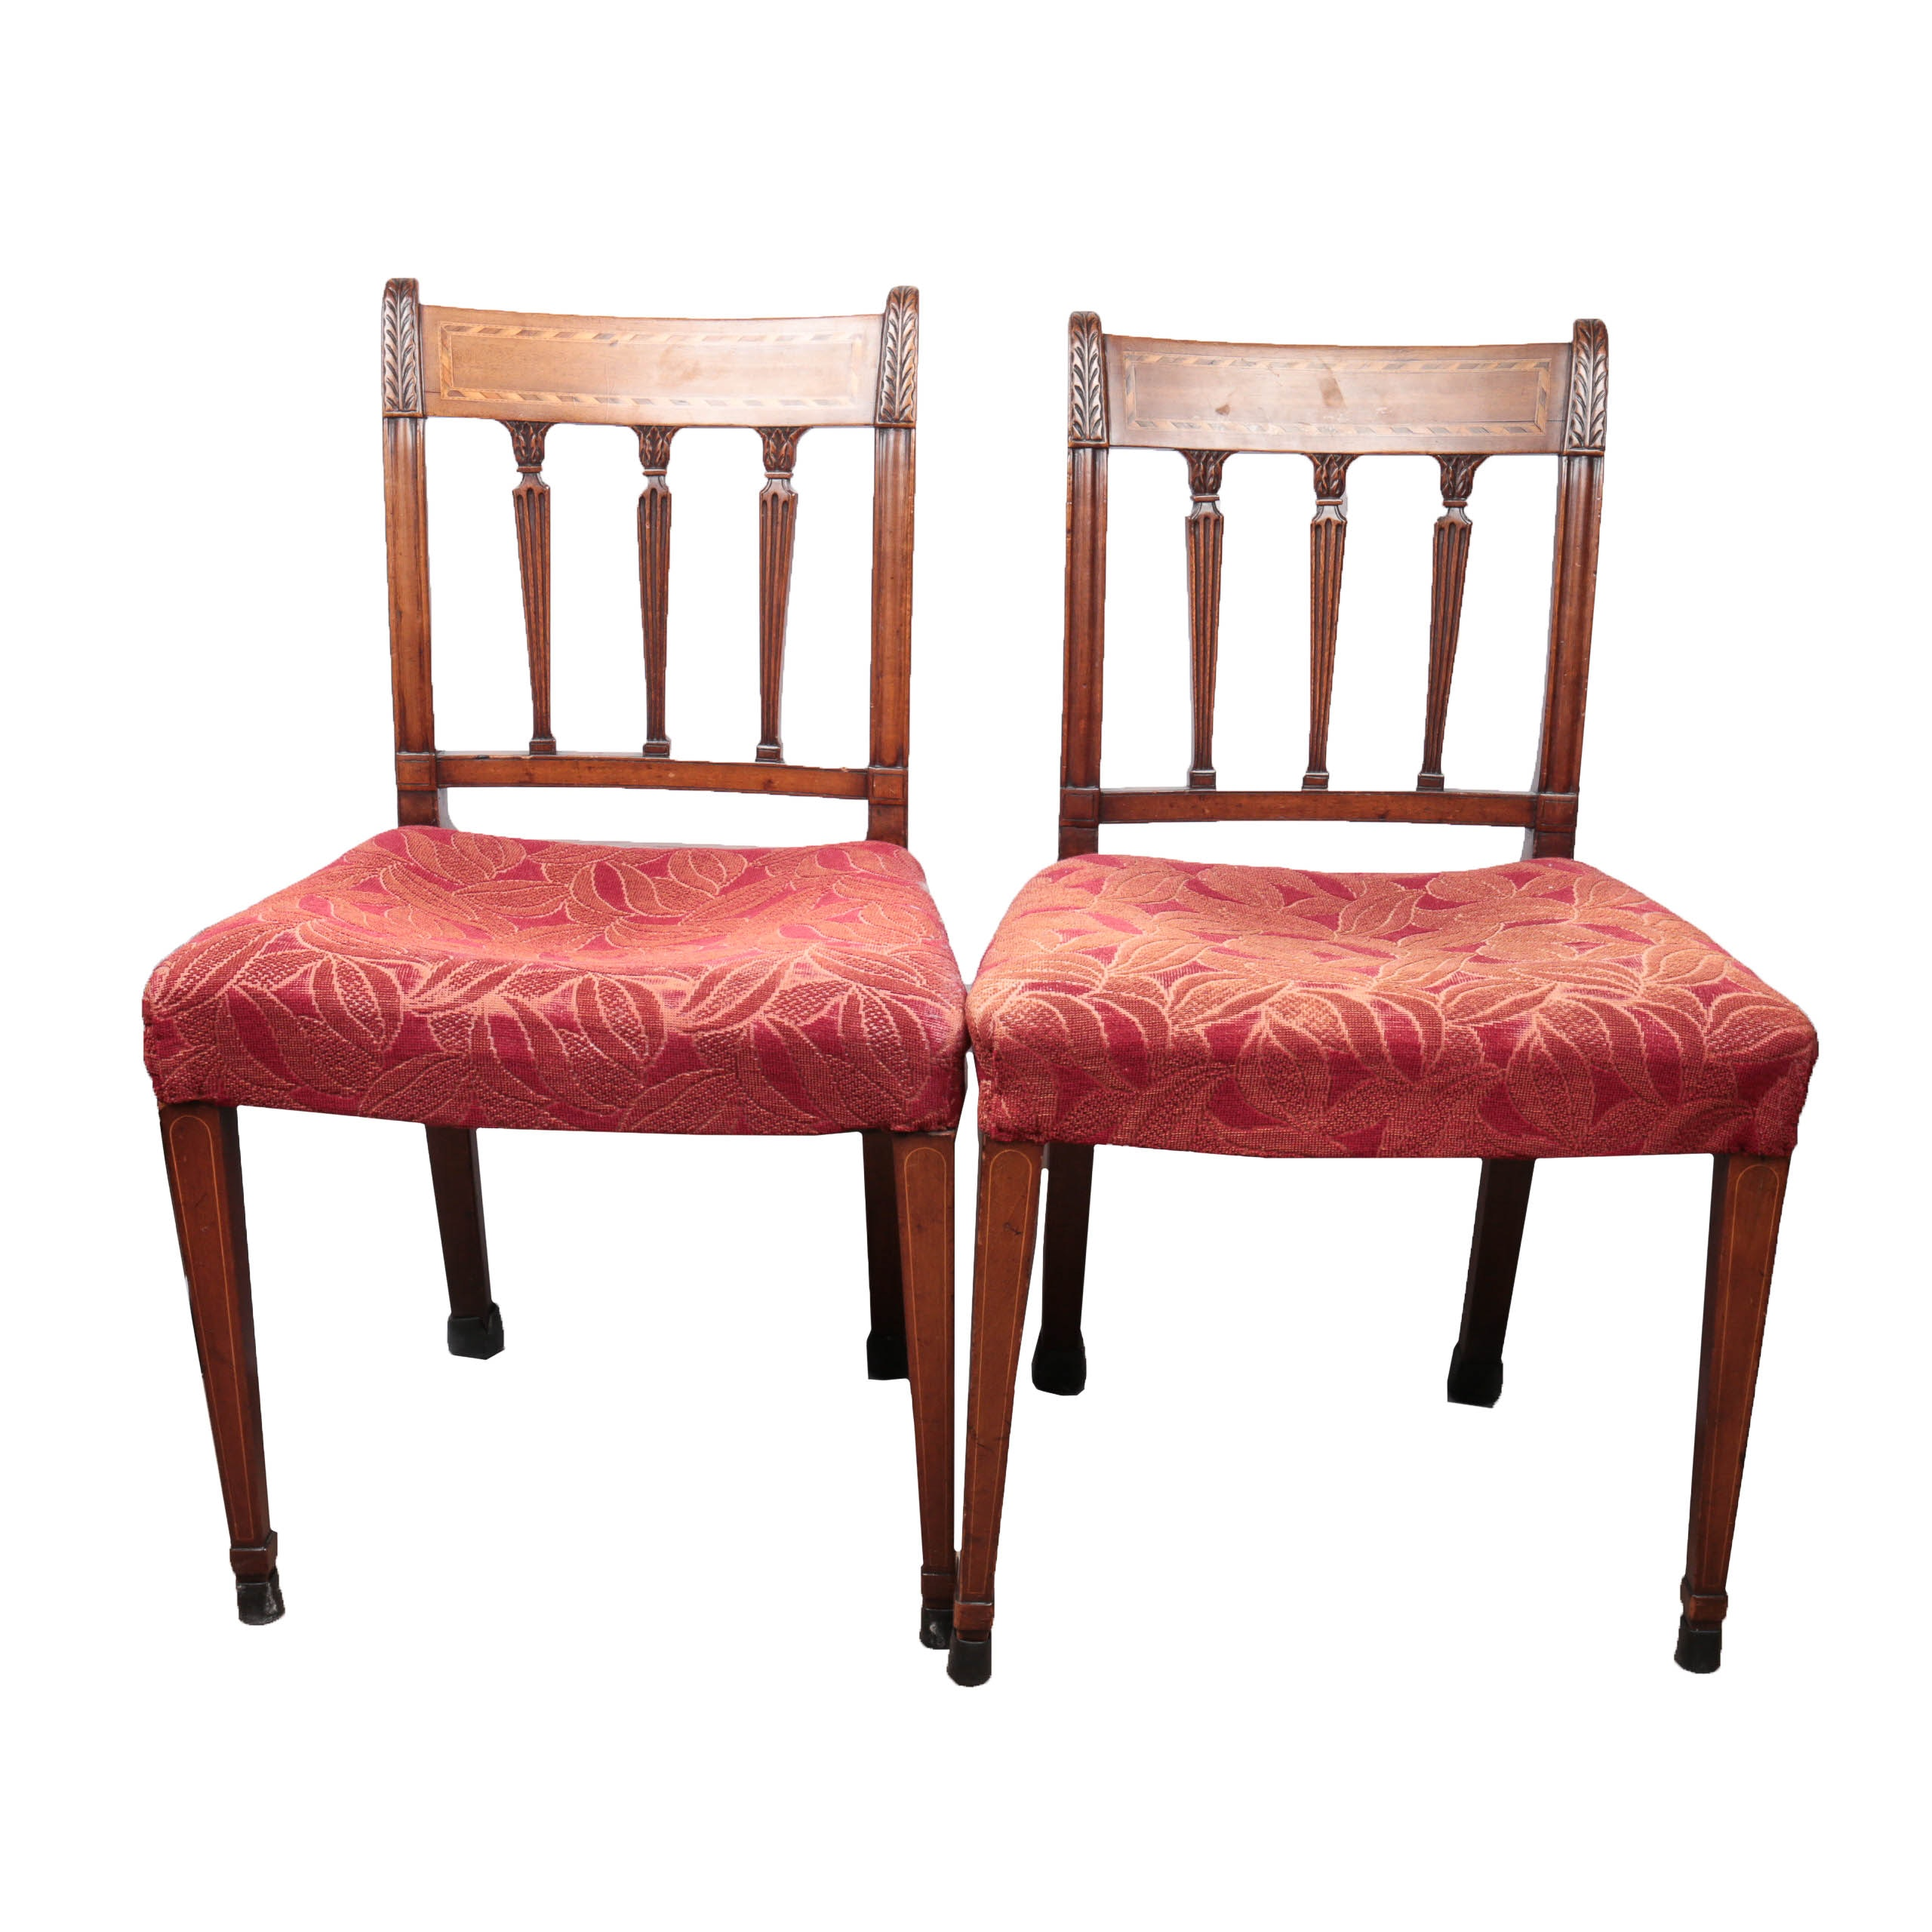 Matching Pair Of Antique Mahogany Neoclassical Chairs ...